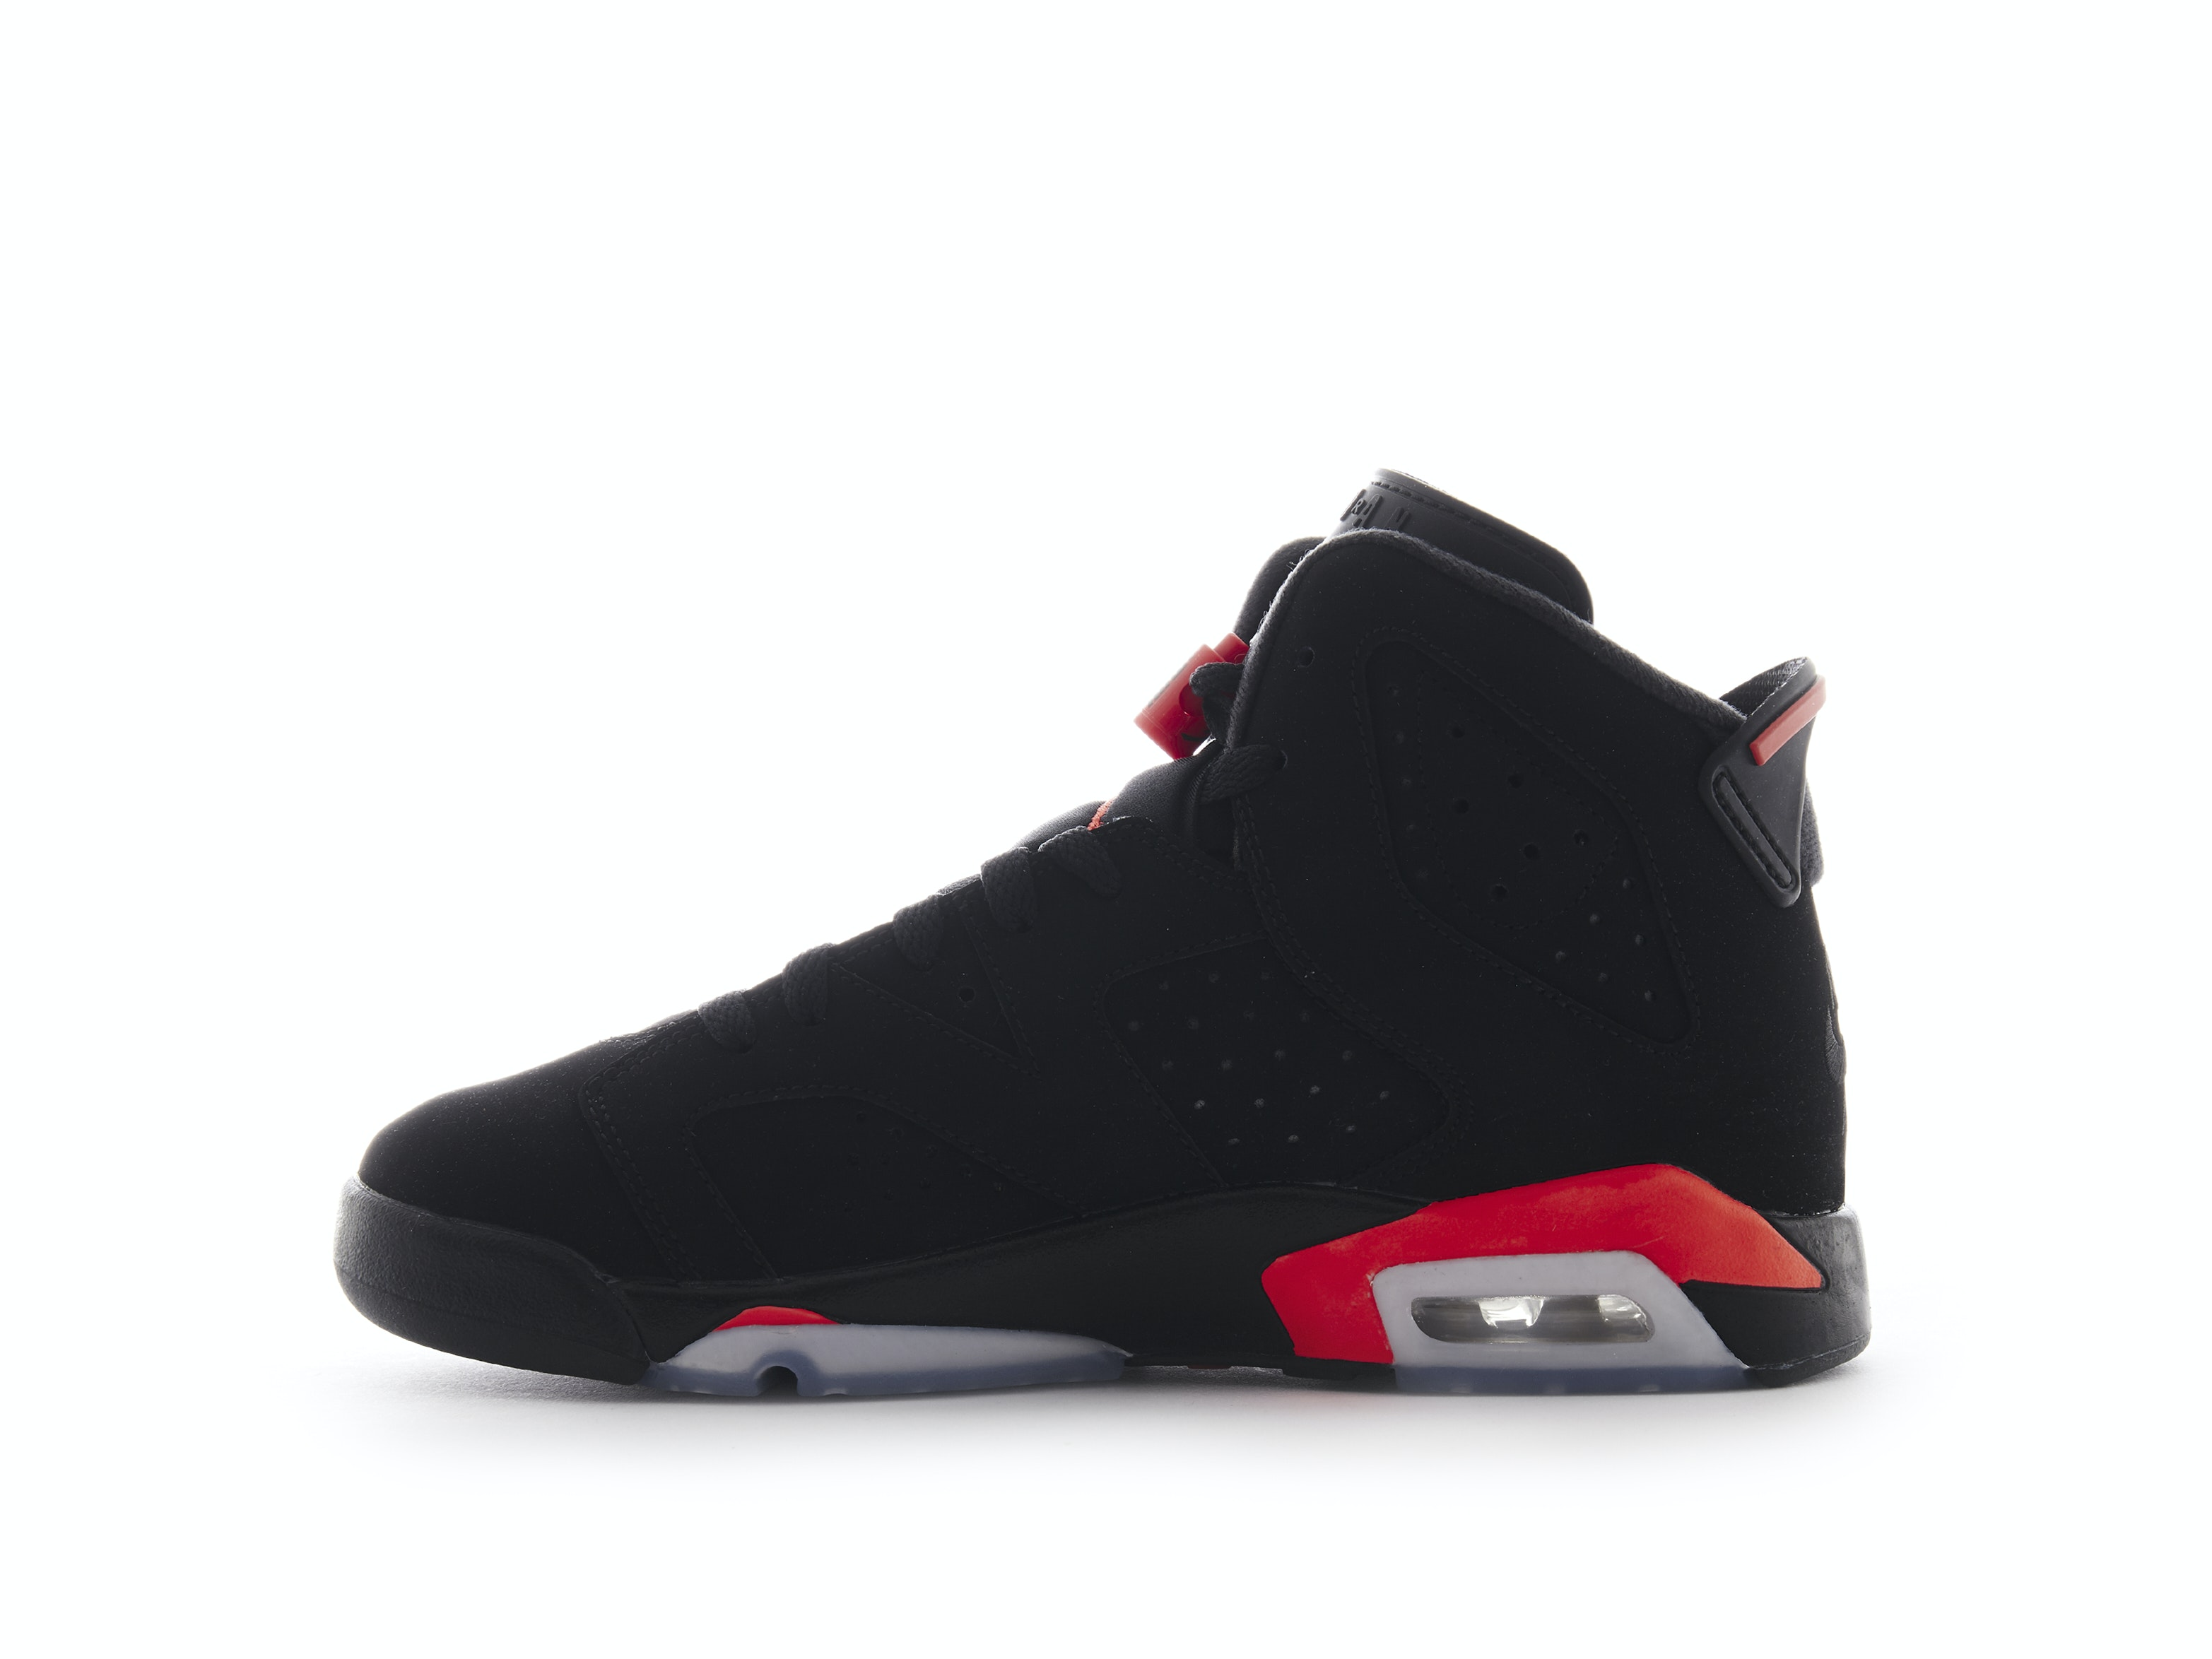 promo code ae6d2 4f1cd Air Jordan 6 Retro GS Infrared 2019. 100% AuthenticAvg Delivery Time  1-2  days